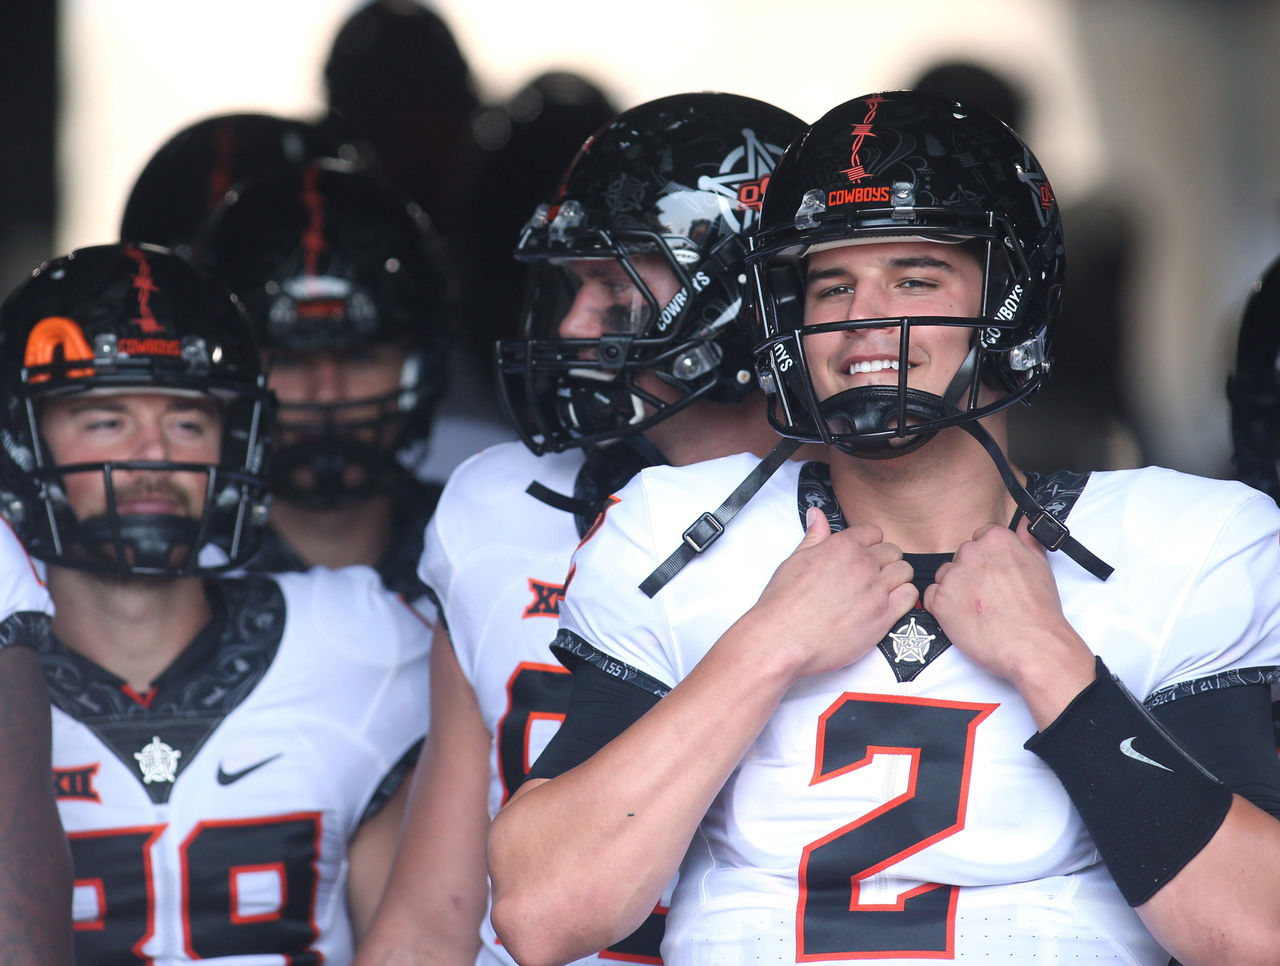 Cropped 2017 09 16t195651z 1381918064 nocid rtrmadp 3 ncaa football oklahoma state at pittsburgh